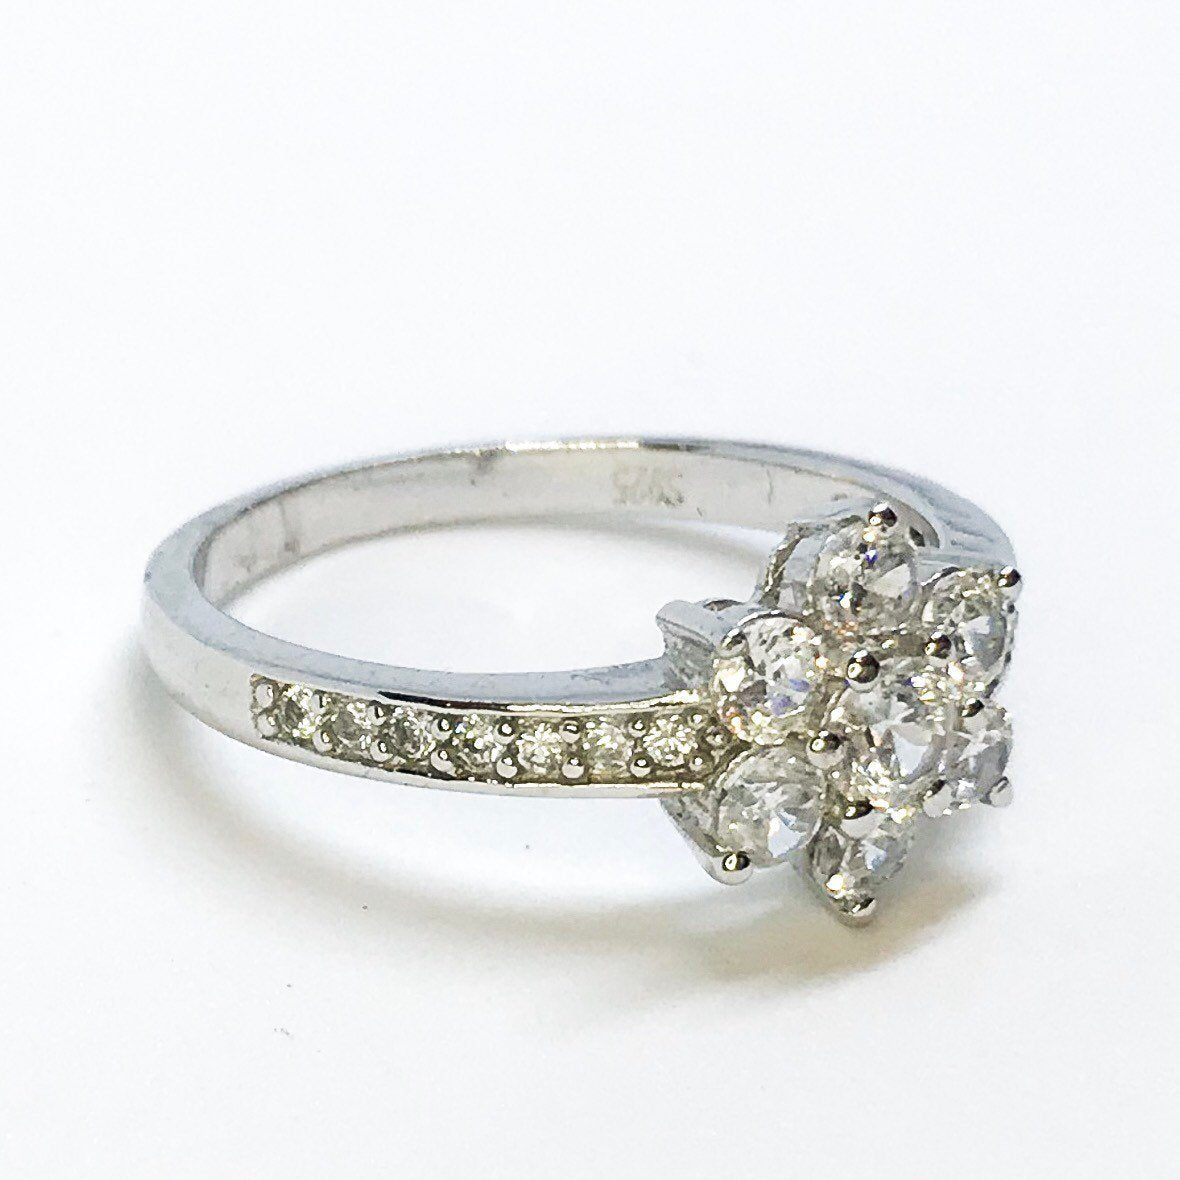 NEW 14K White Gold Layered on Sterling Silver Flower Ring